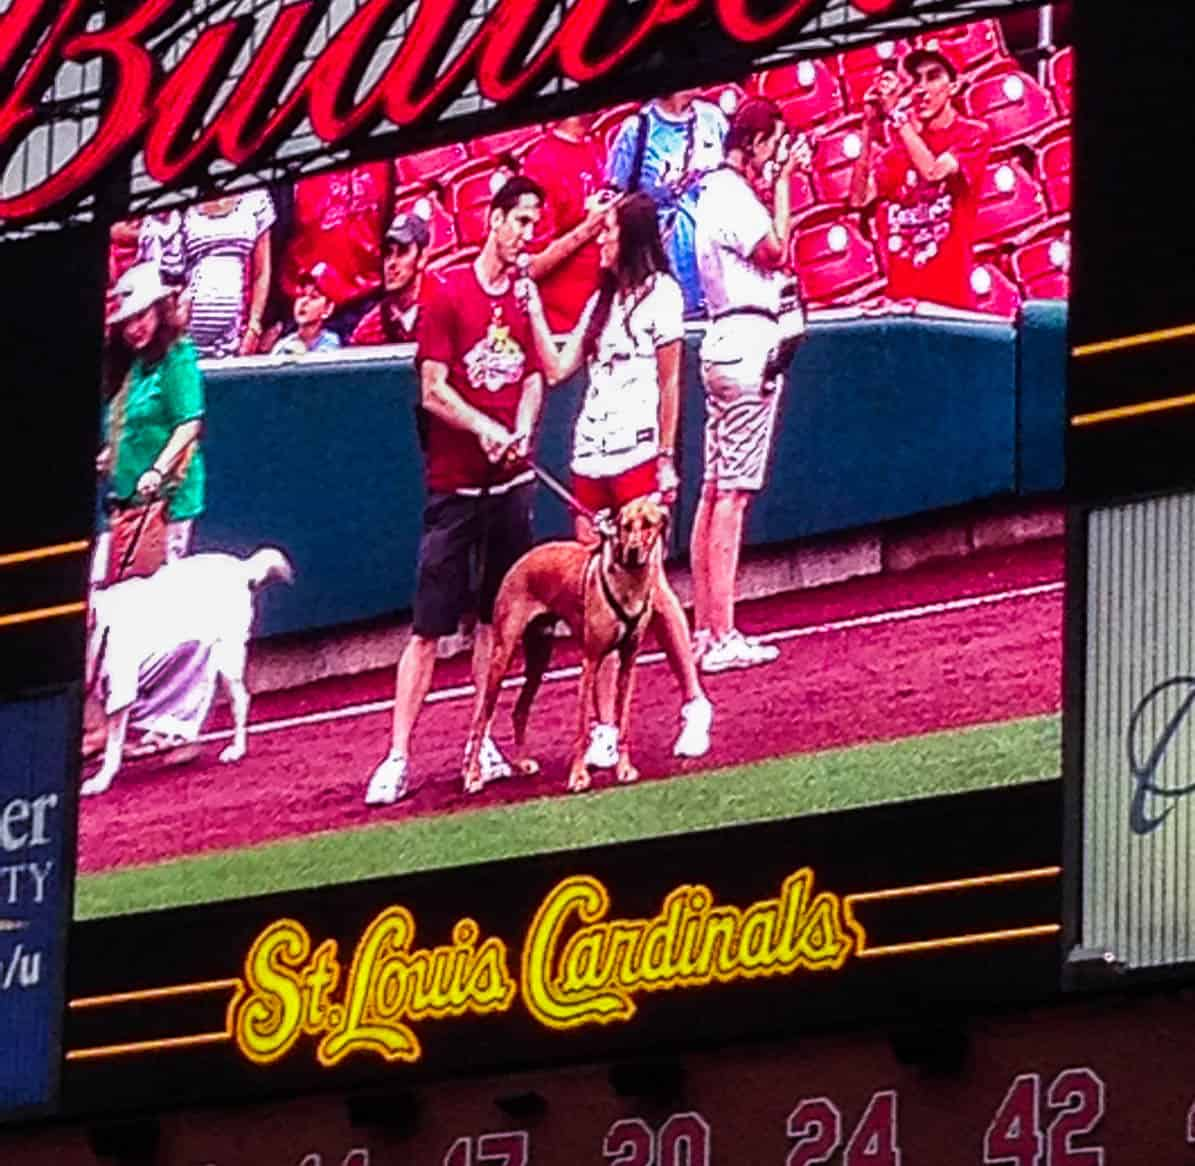 Rhodesian Ridgeback, pet adventure, dog blog, pooches in the ballpark, st louis cardinals, petcentric, marking our territory